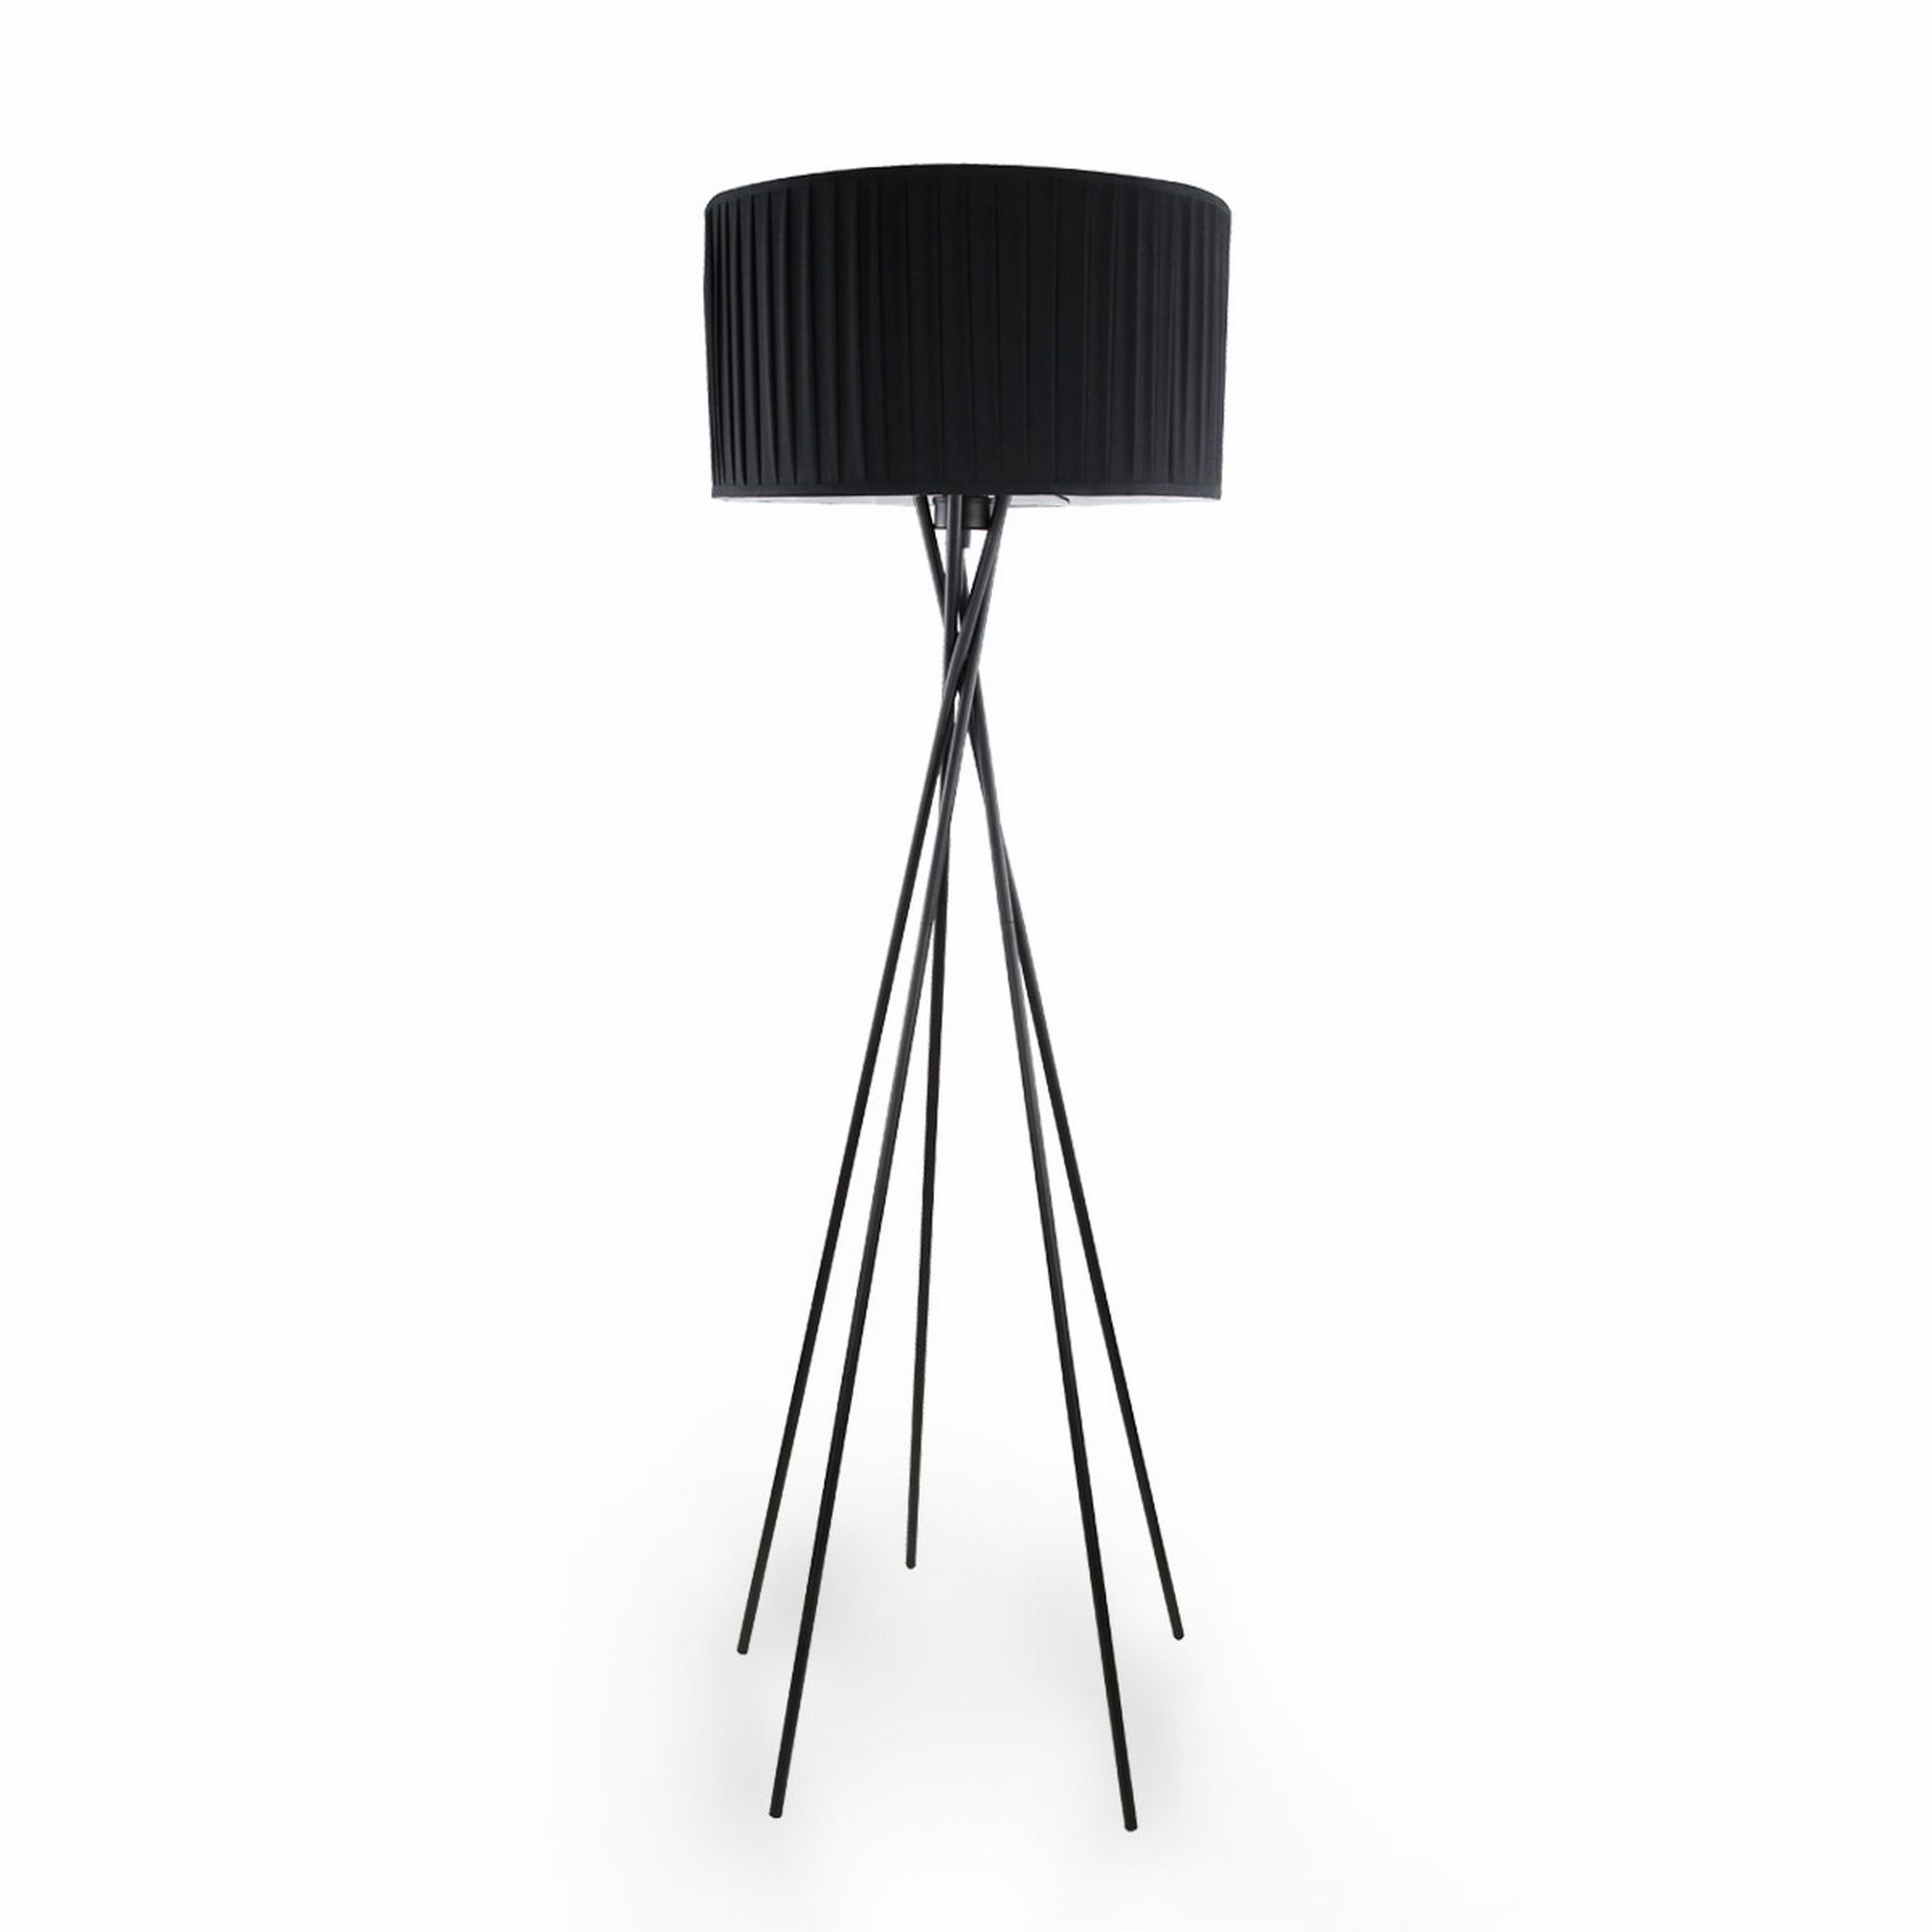 lux pro design floor lamp floor lamp living room lamp light stand lamp ebay. Black Bedroom Furniture Sets. Home Design Ideas